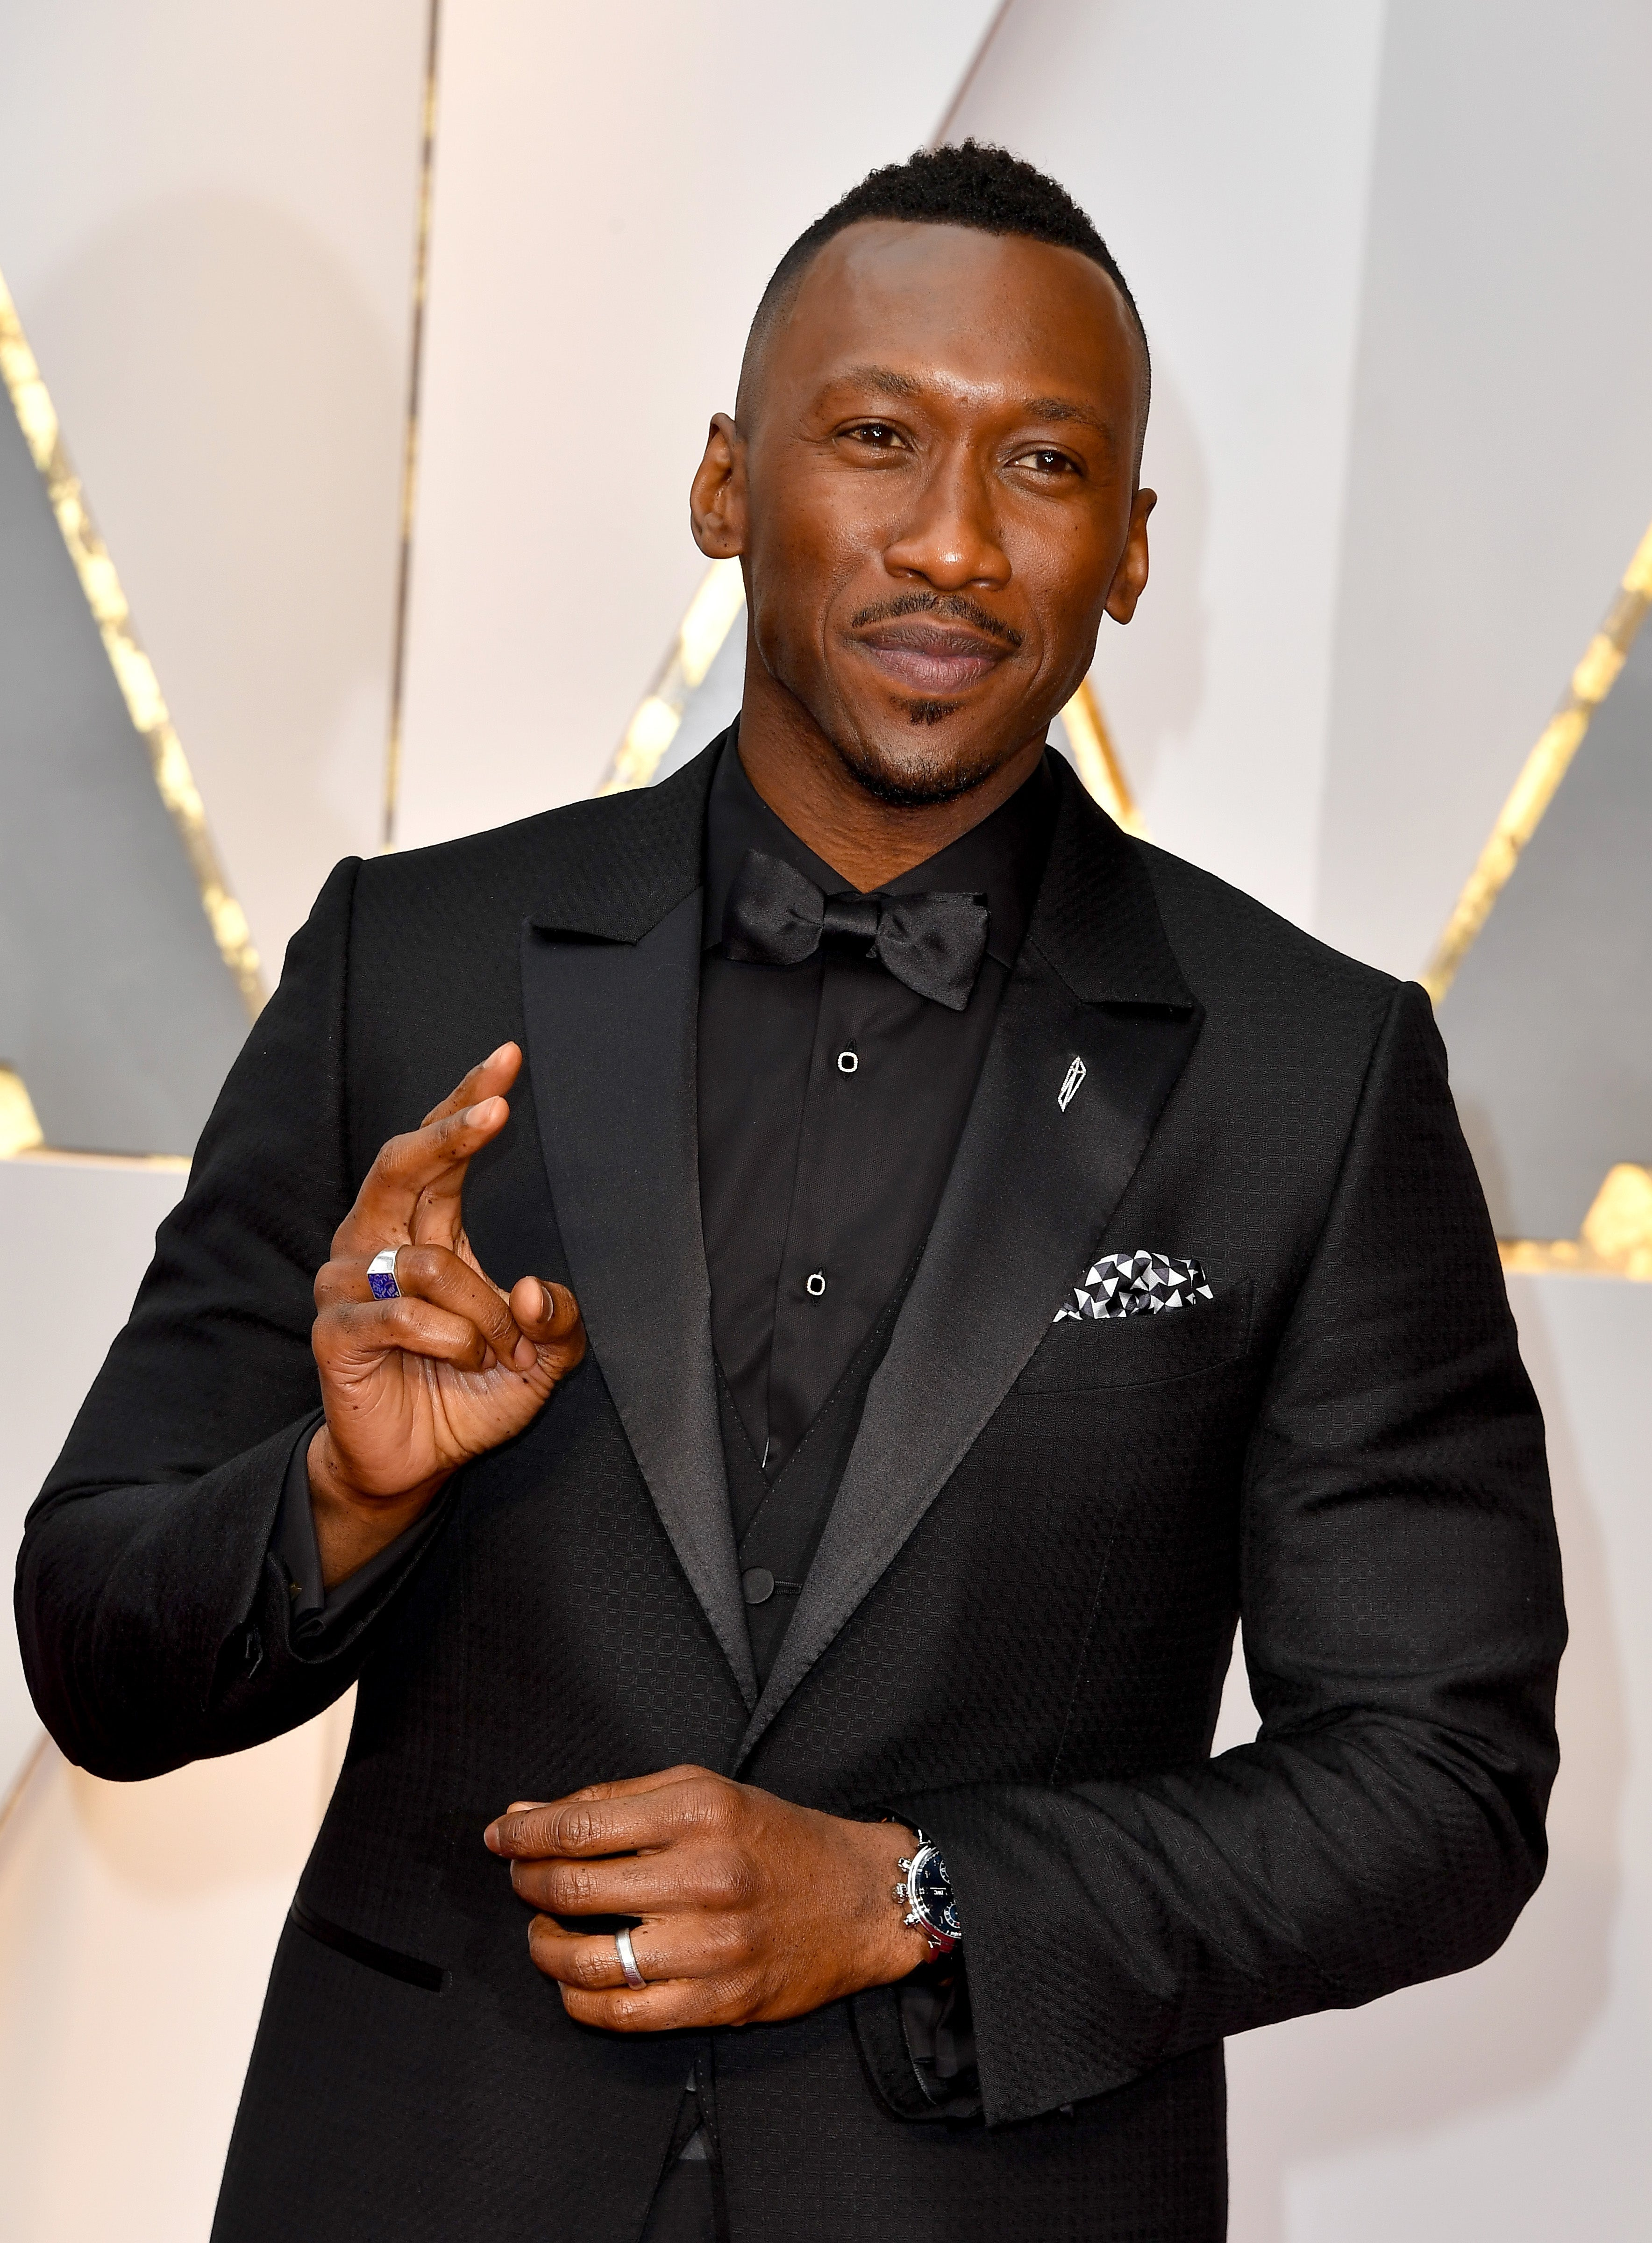 You Have To Hear Mahershala Ali's Raps From Back In The Day